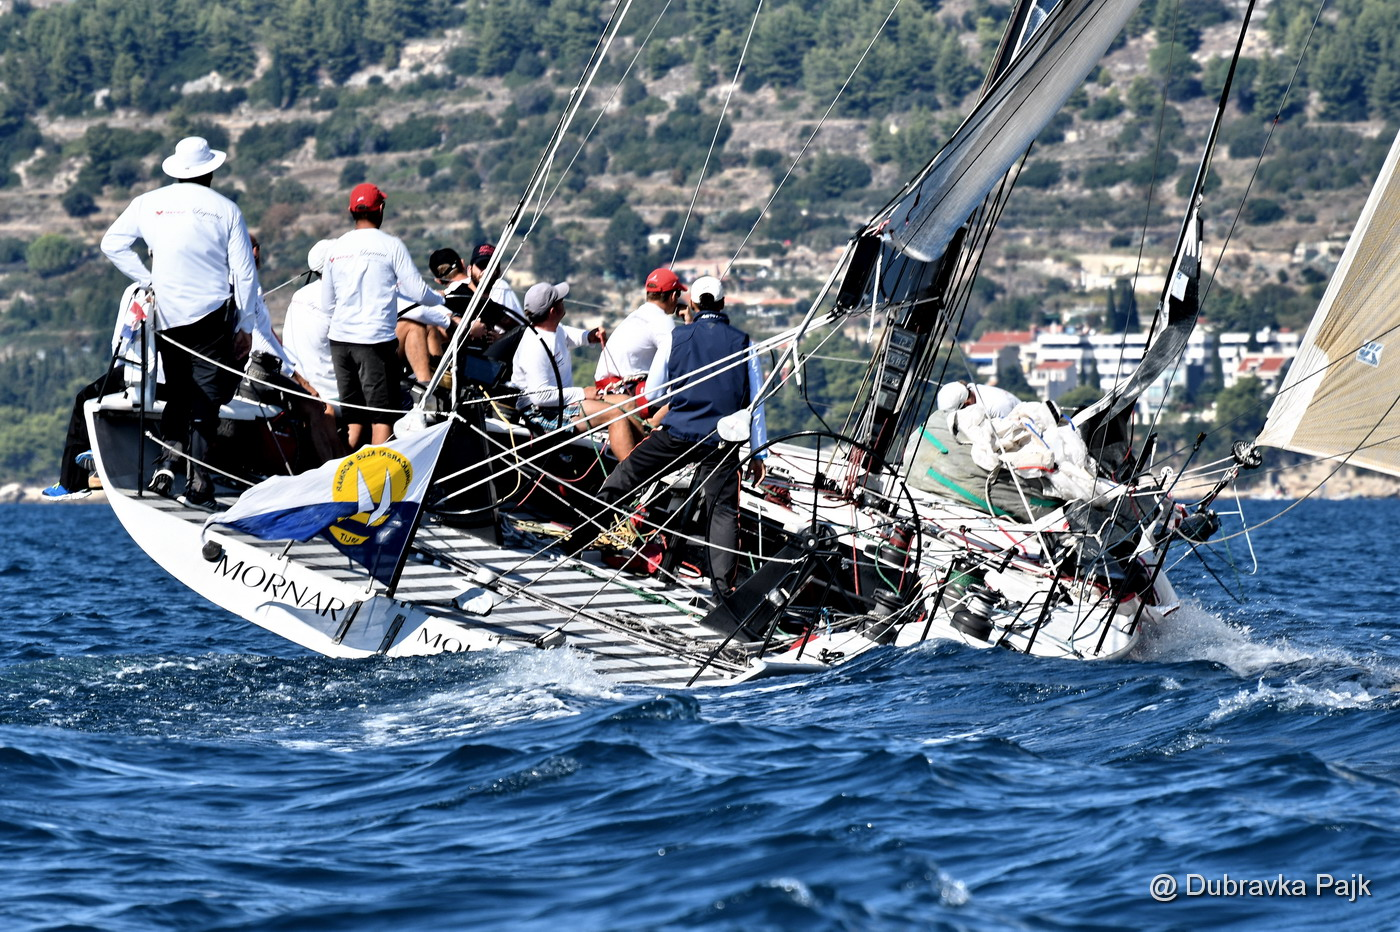 MOLO LONGO SAILING TEAM